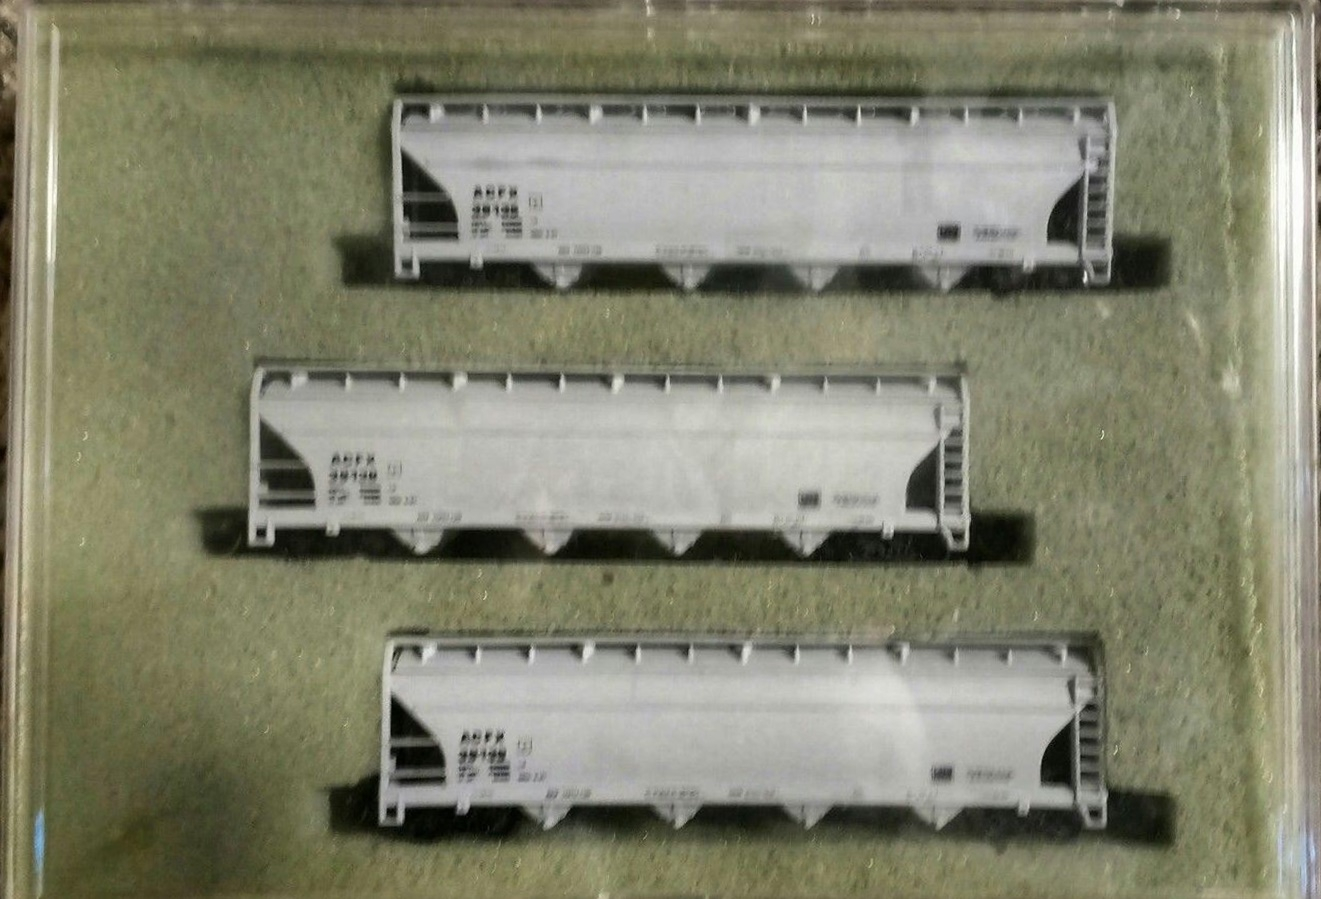 N Scale - N Hobby Distributing - 56 - Covered Hopper, 4-Bay, ACF Centerflow - American Car & Foundry - 39130, 39135, 39139